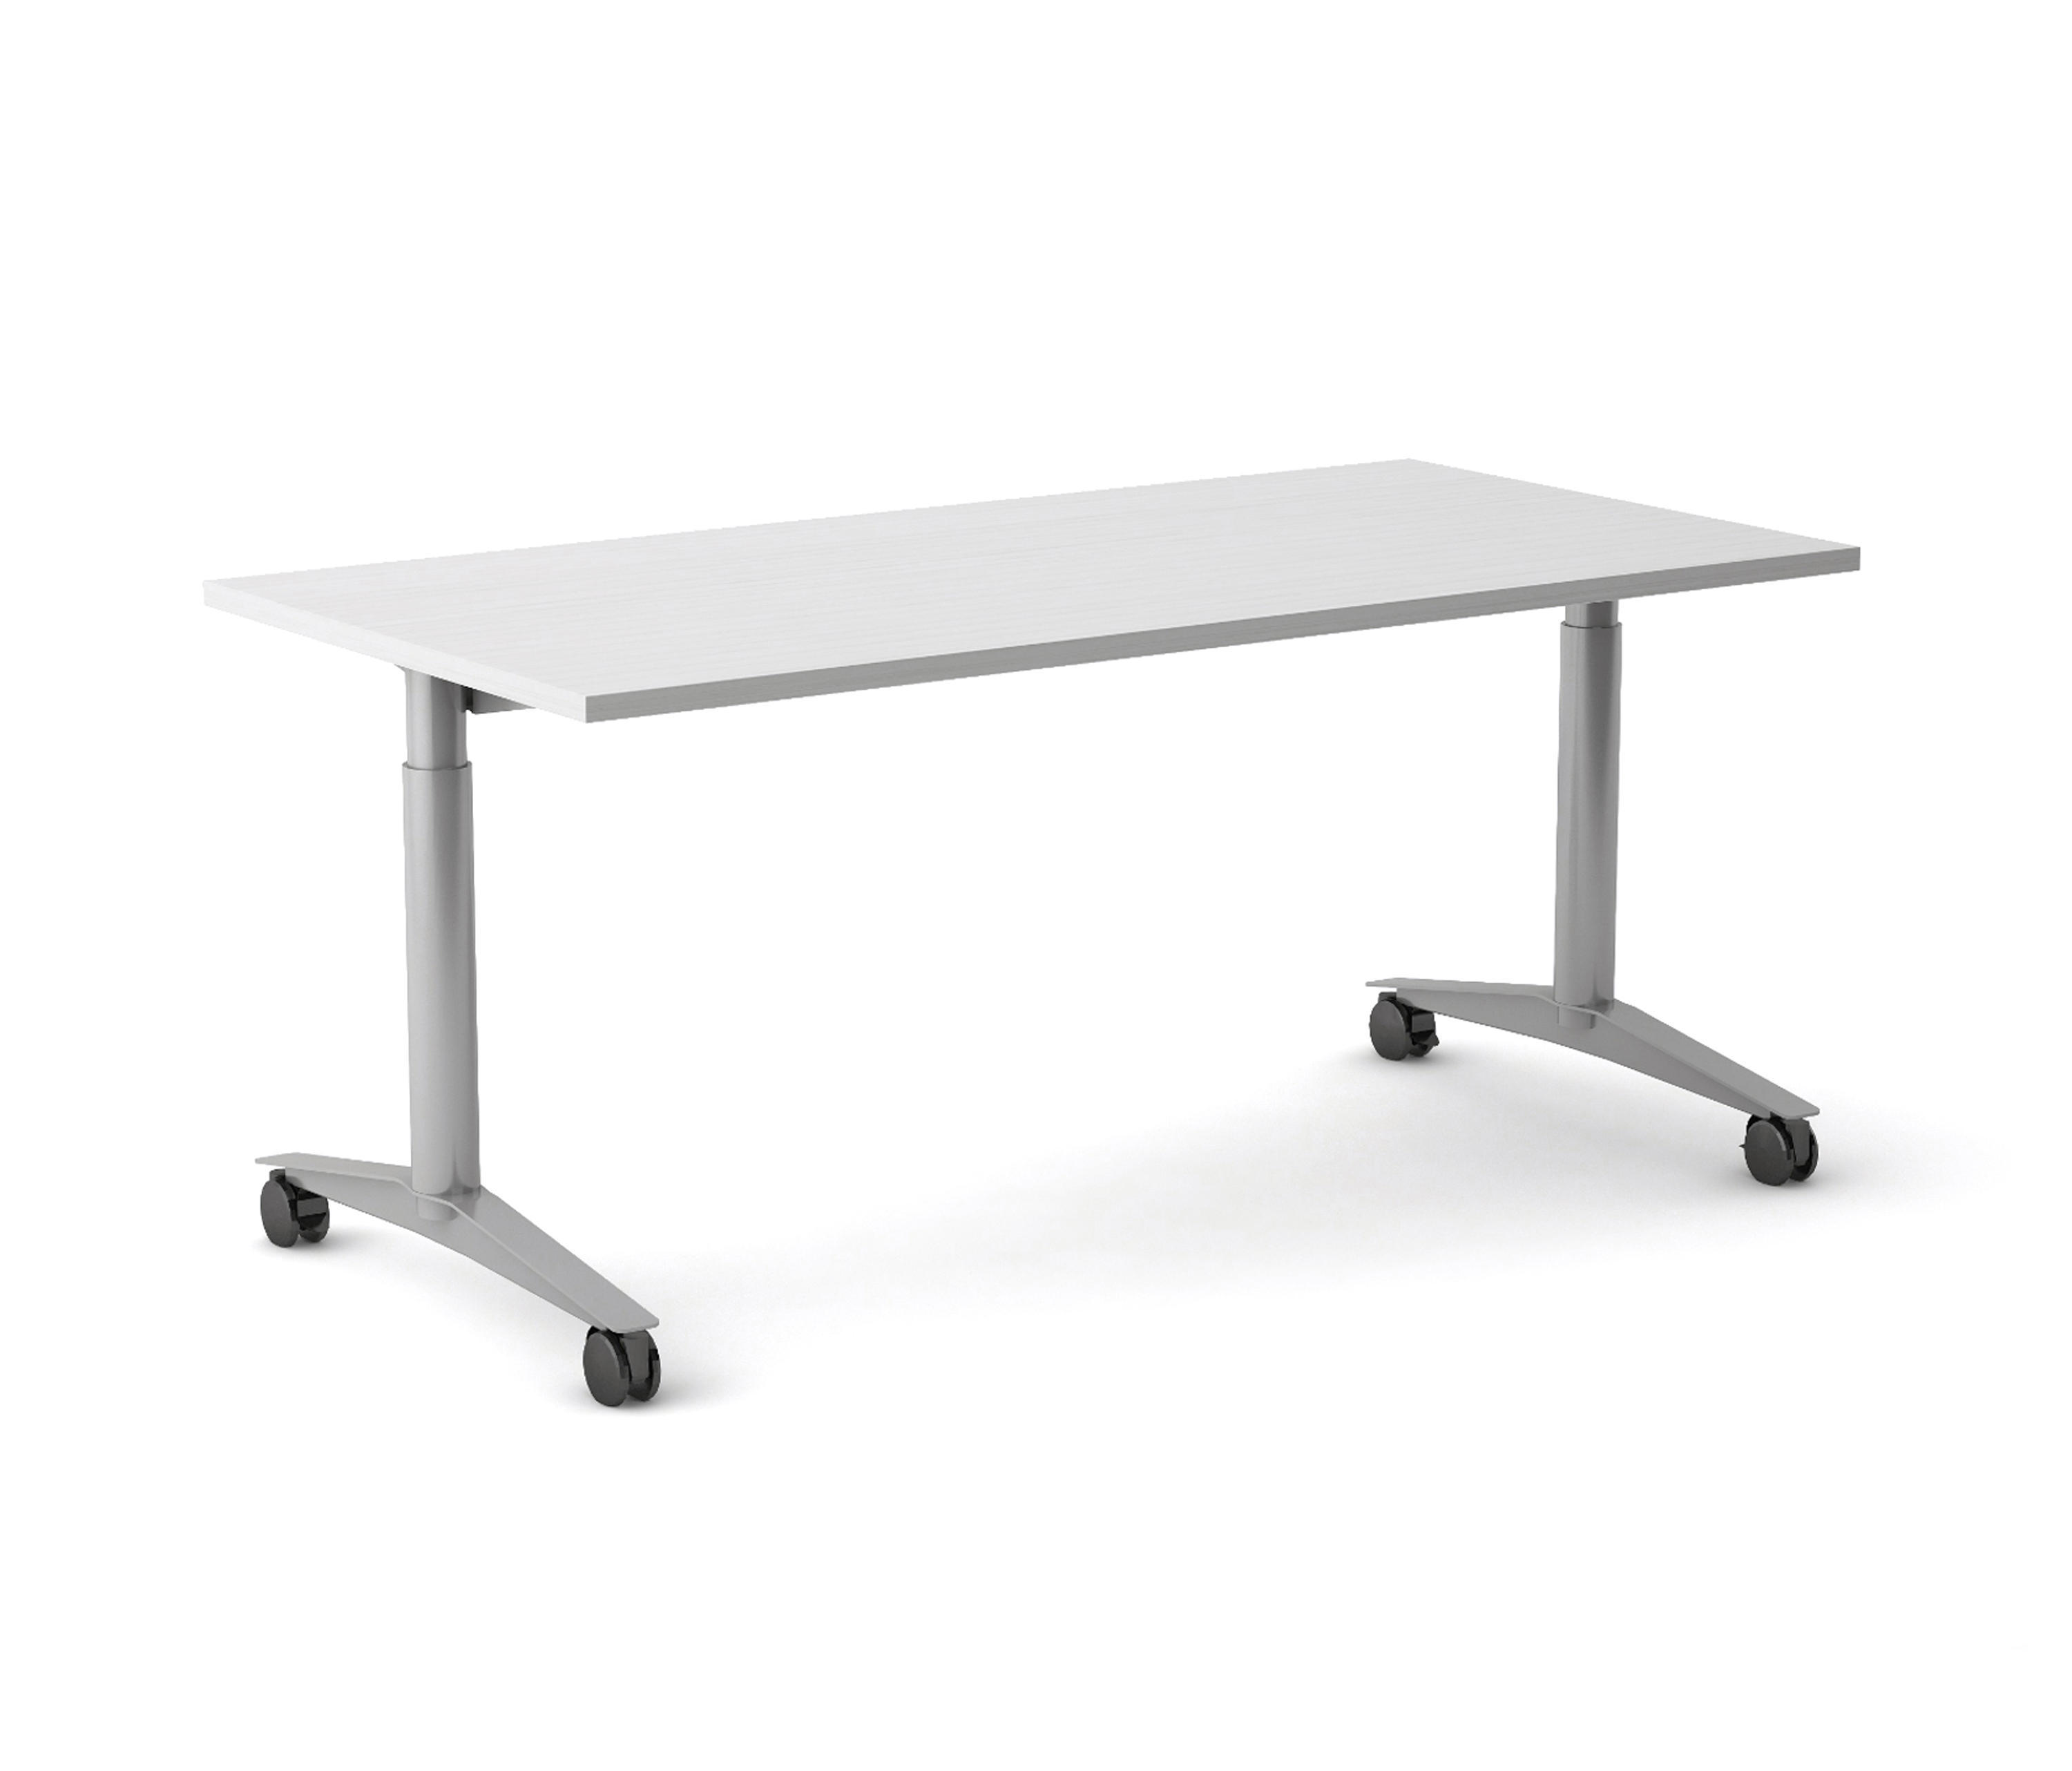 List of synonyms and antonyms of the word steelcase tables for Bureau antonym